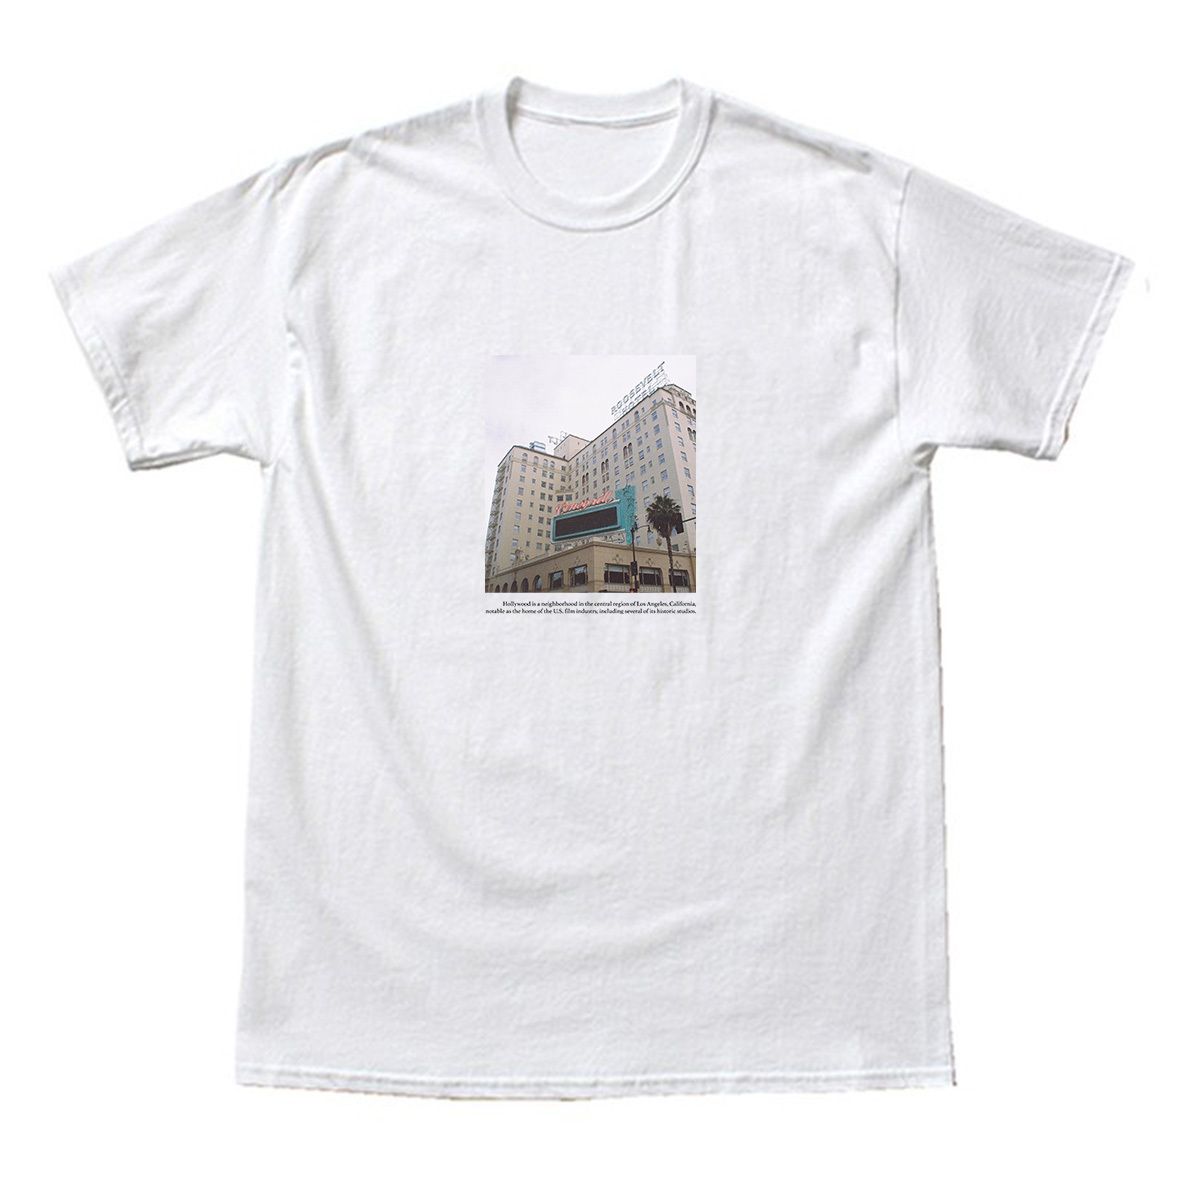 Hollywood Dream Tee